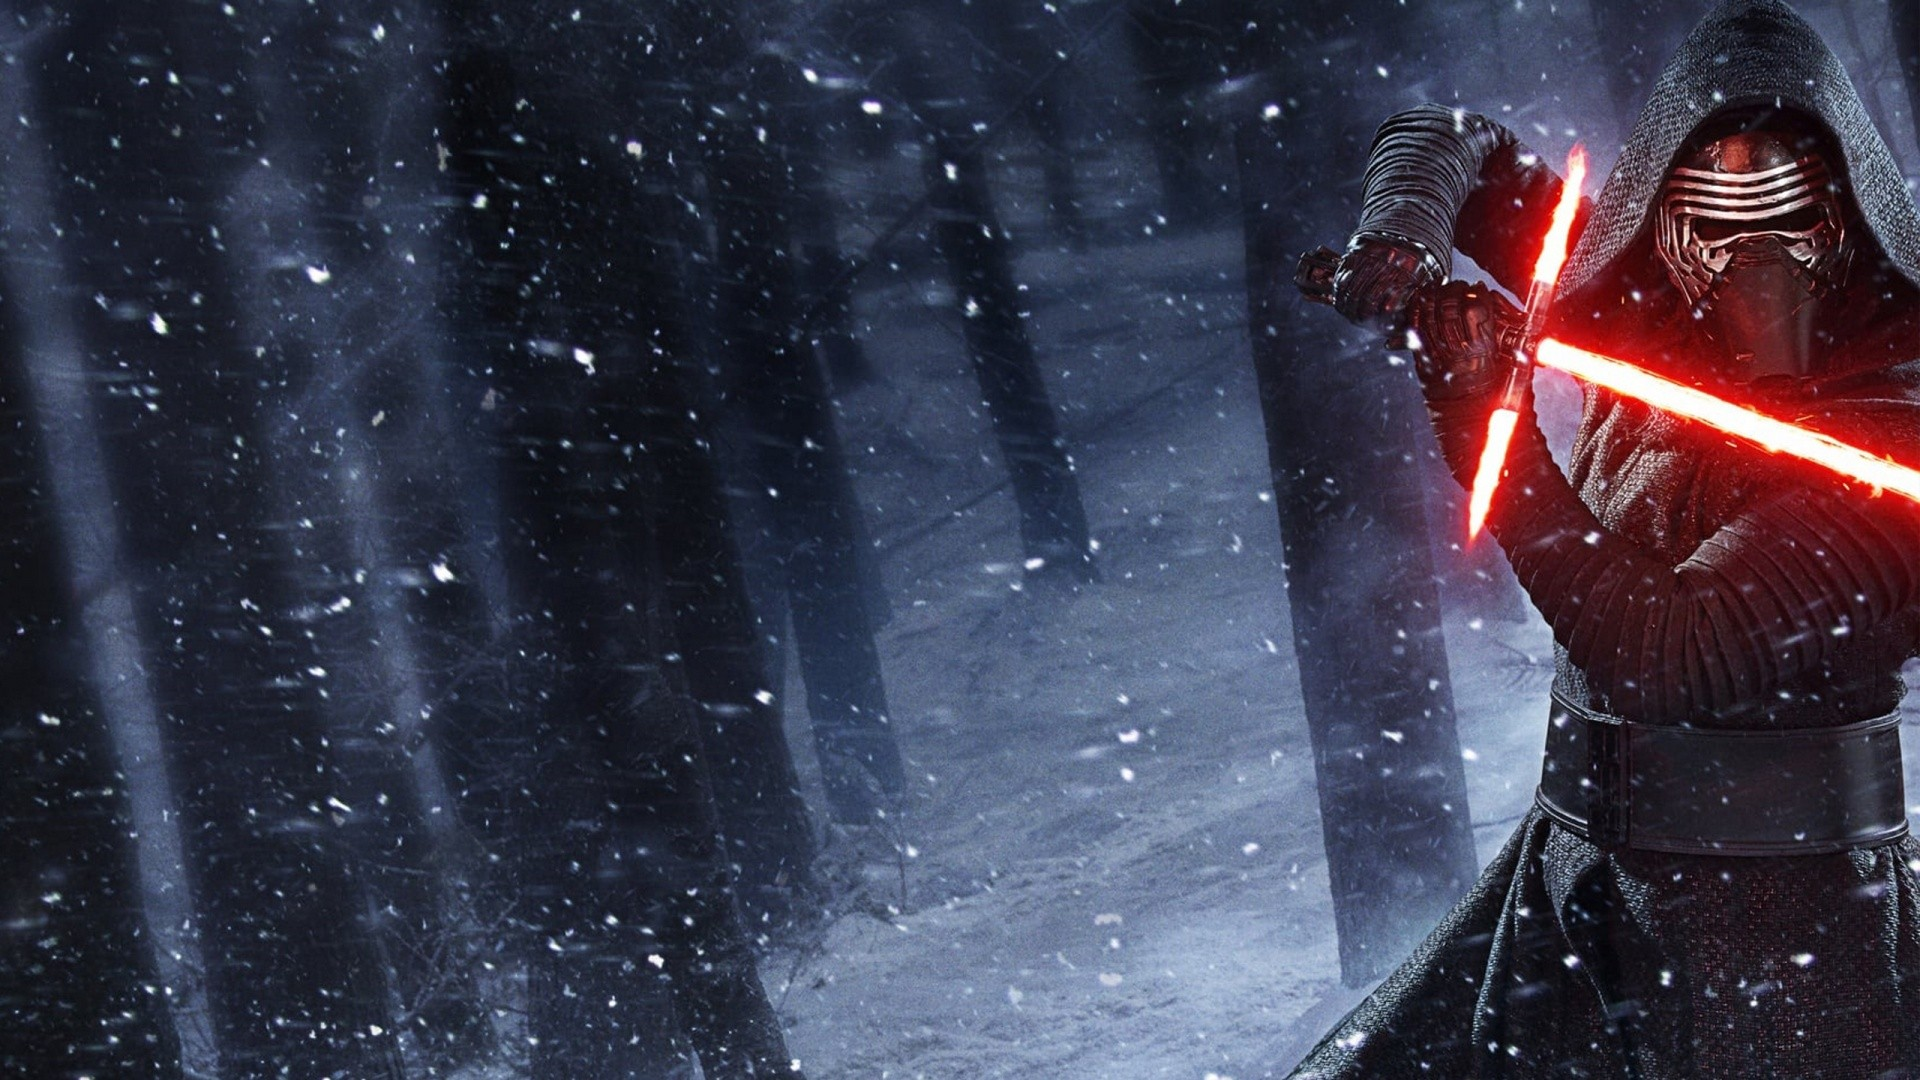 kylo ren wallpaper 1920x1080 ·① download free cool wallpapers for